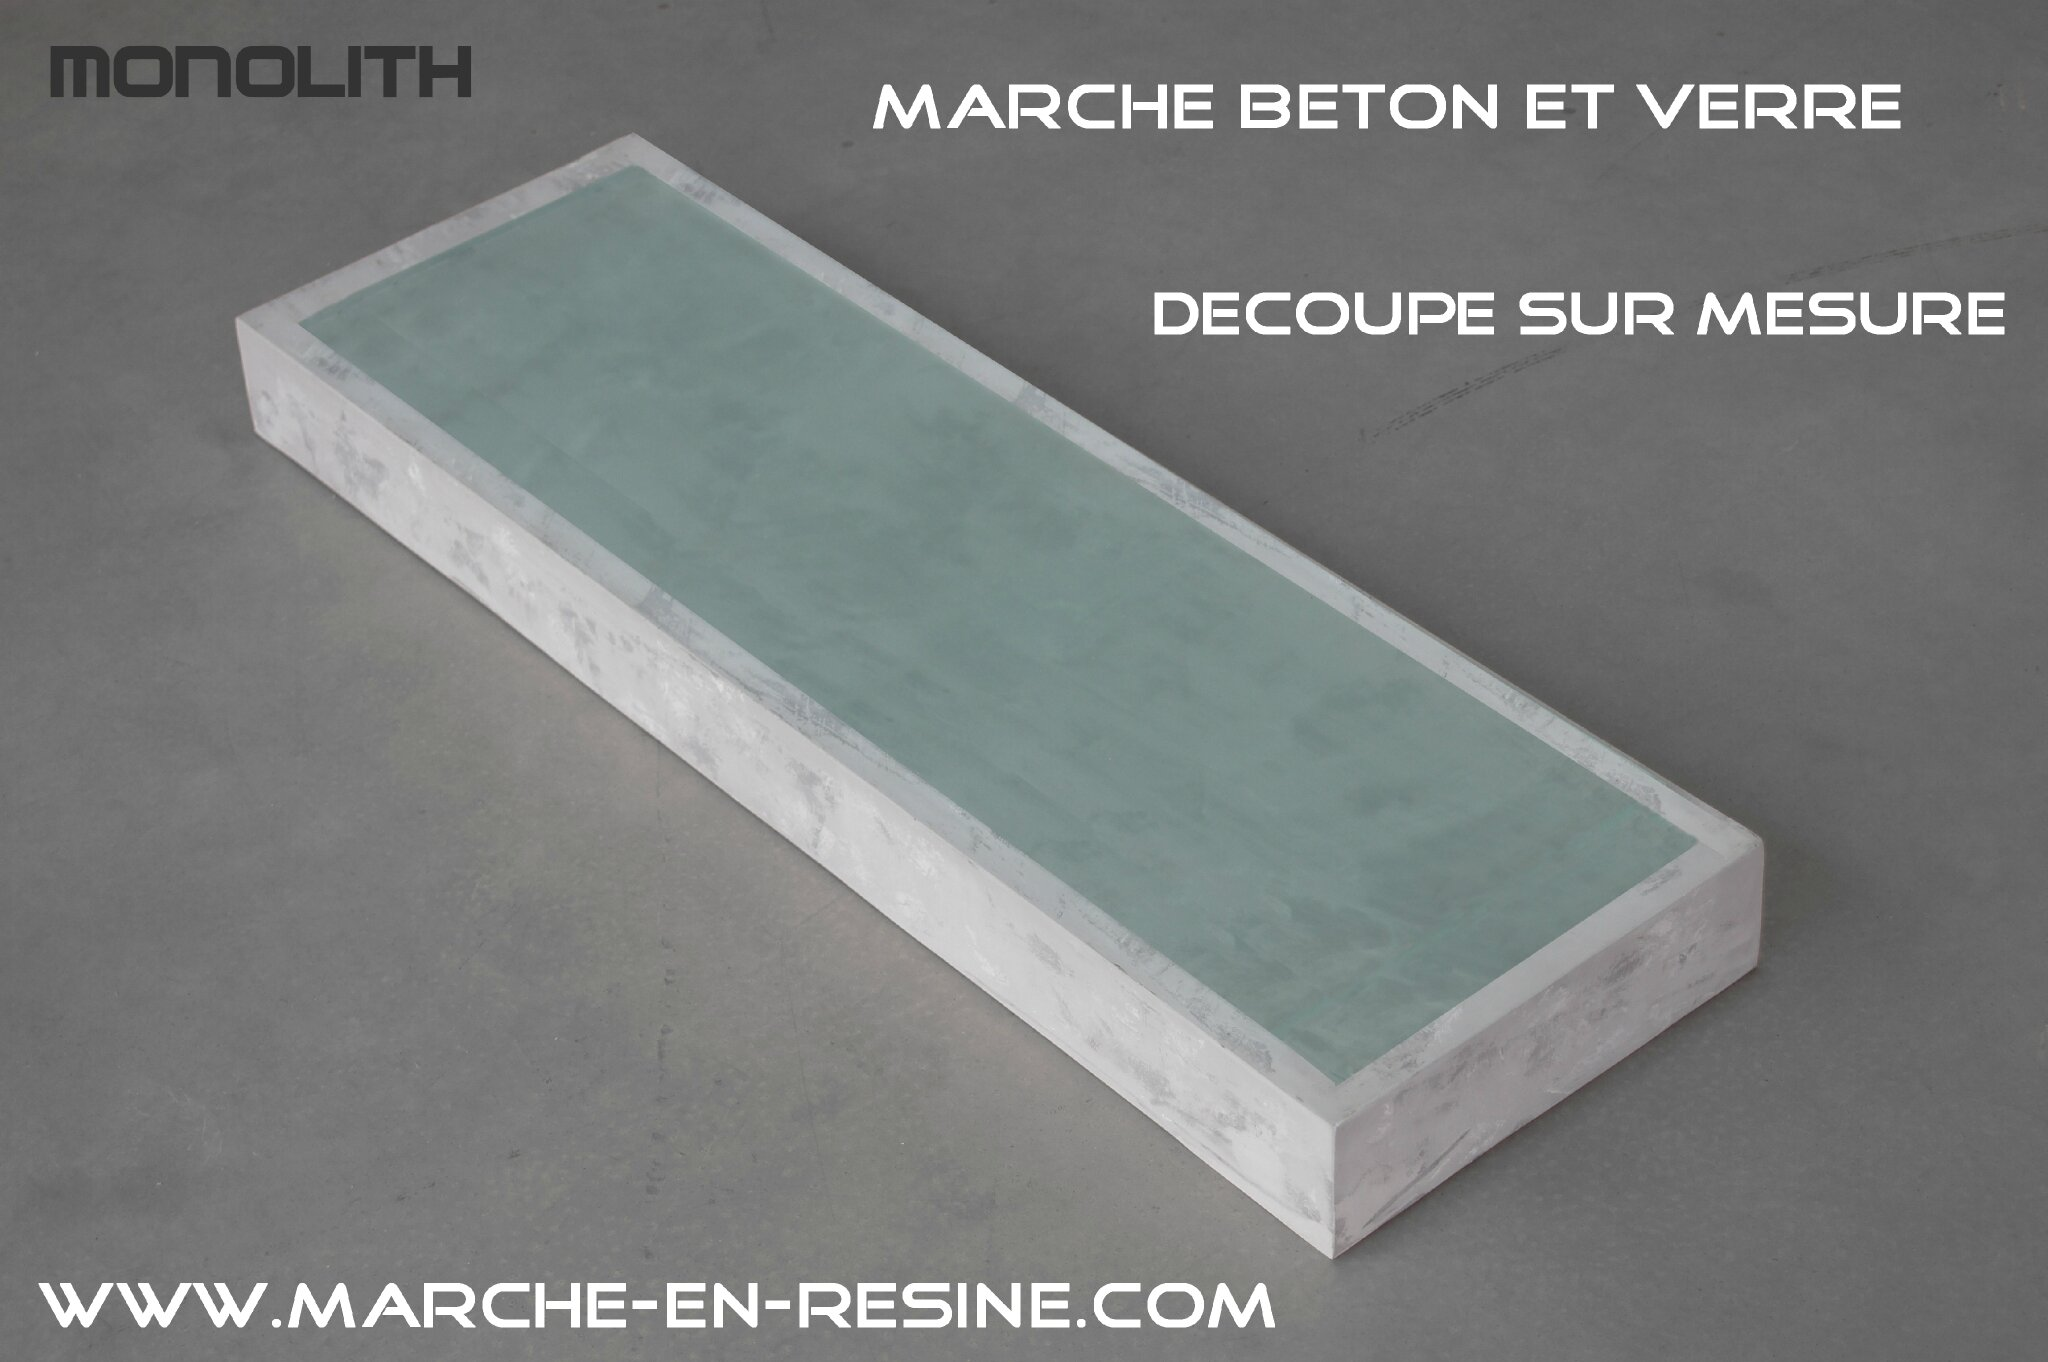 monolith is a compagny offer a range of concrete matt black gray with fine texture resin steps or matt colors with